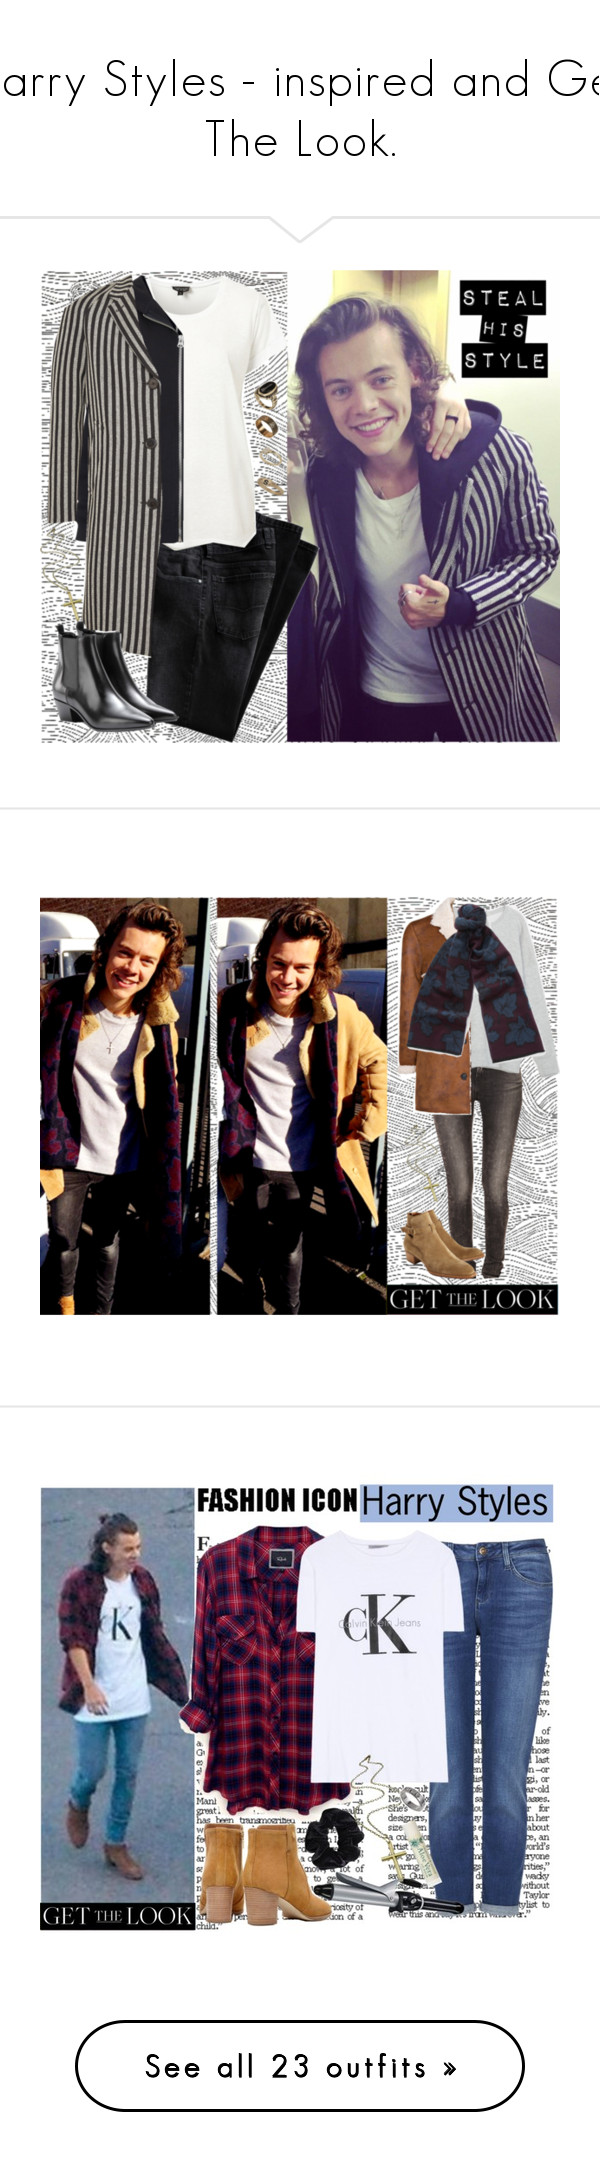 """Harry Styles - inspired and Get The Look."" by francesca-valentina-gagliardi ❤ liked on Polyvore featuring Topshop, Boutique, Yves Saint Laurent, Iva, ASOS, ALDO, IRO, Zara, MANGO and Burberry"